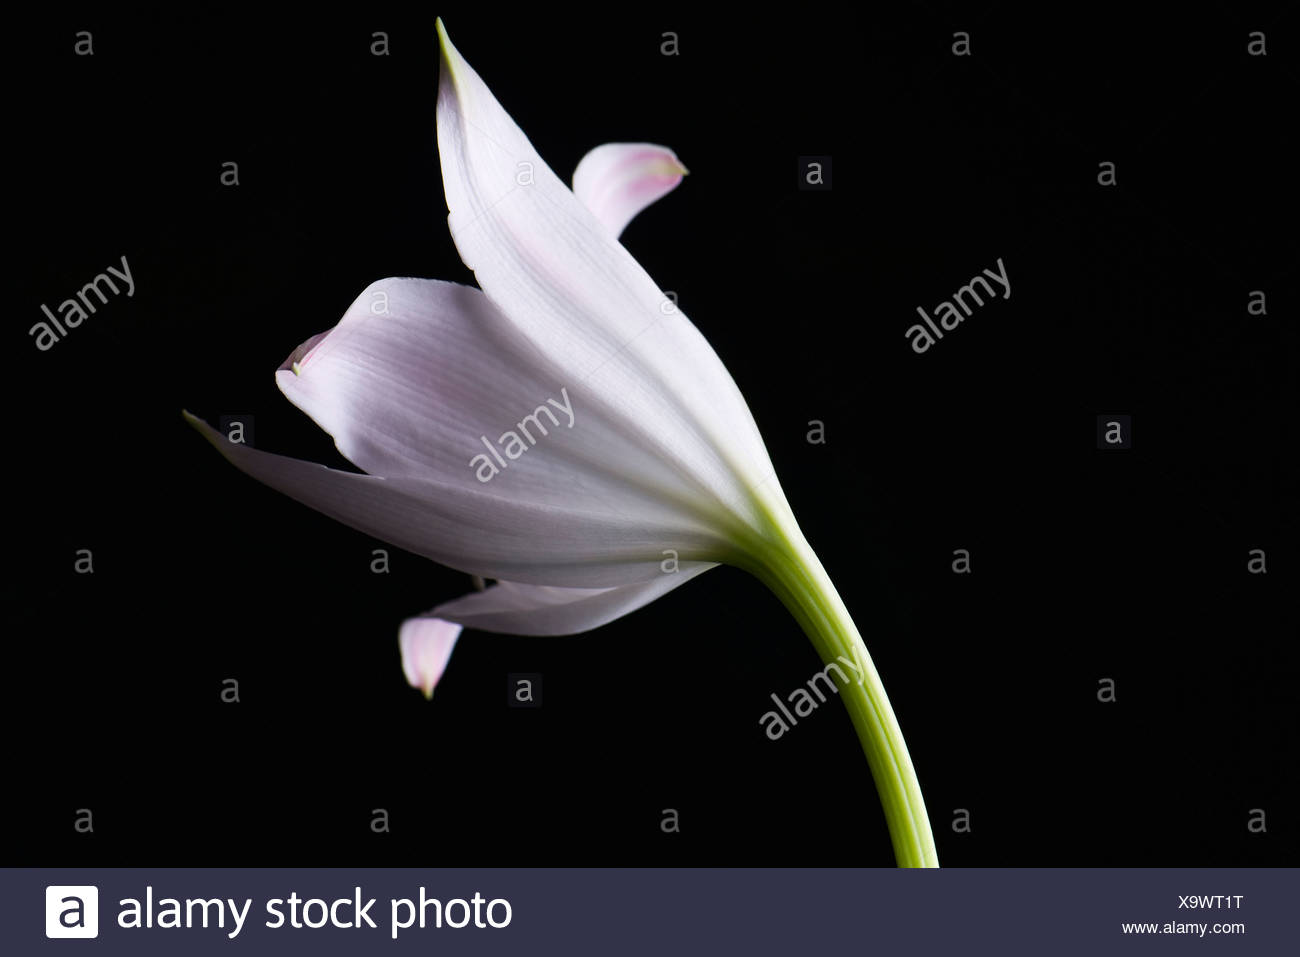 White lily, close-up - Stock Image